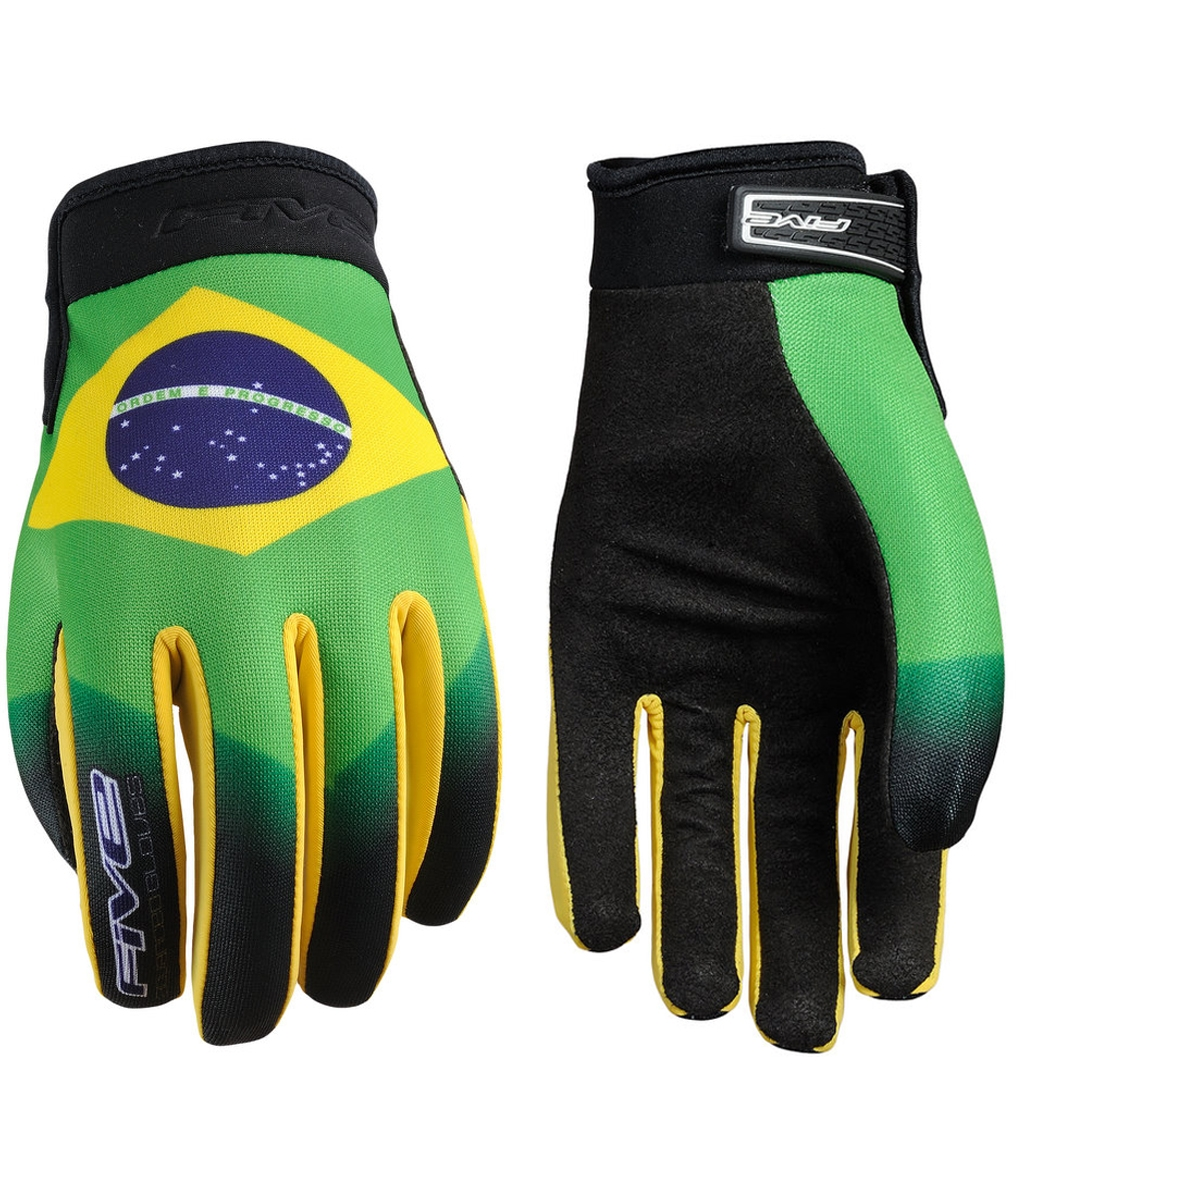 Gants Five Planet Patriot Brésil - S